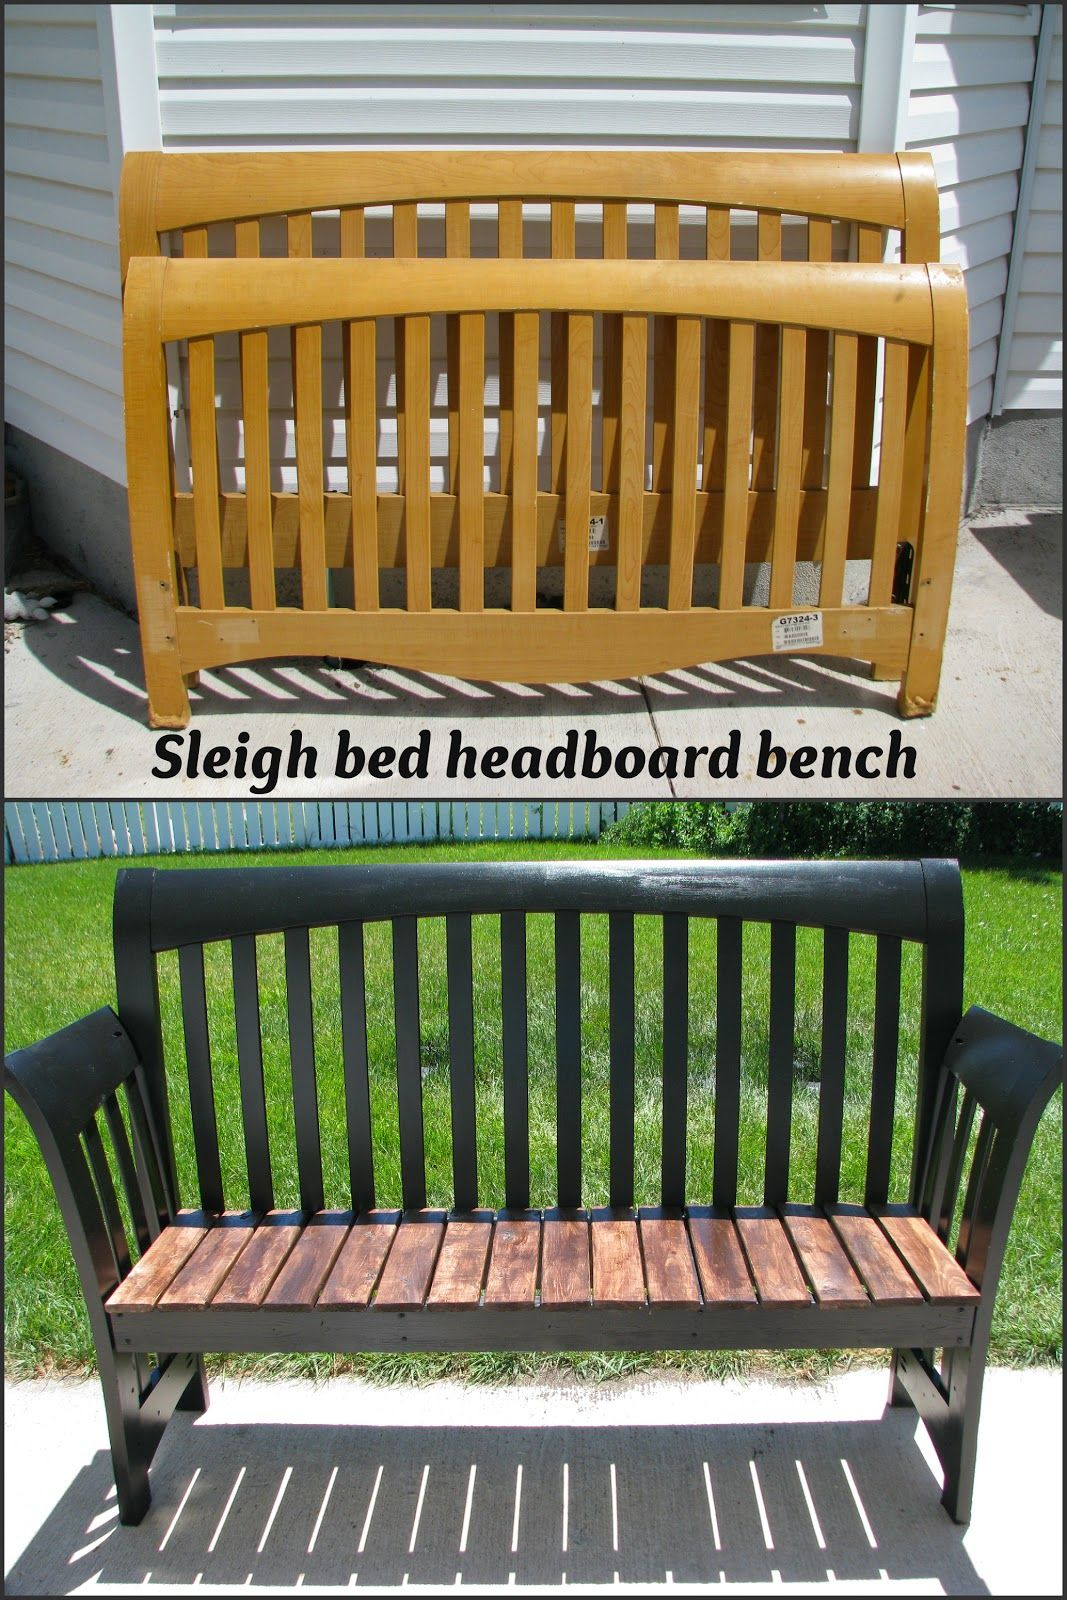 Excellent My So Called Diy Blog Sleigh Bed Headboard Bench Diy Spiritservingveterans Wood Chair Design Ideas Spiritservingveteransorg